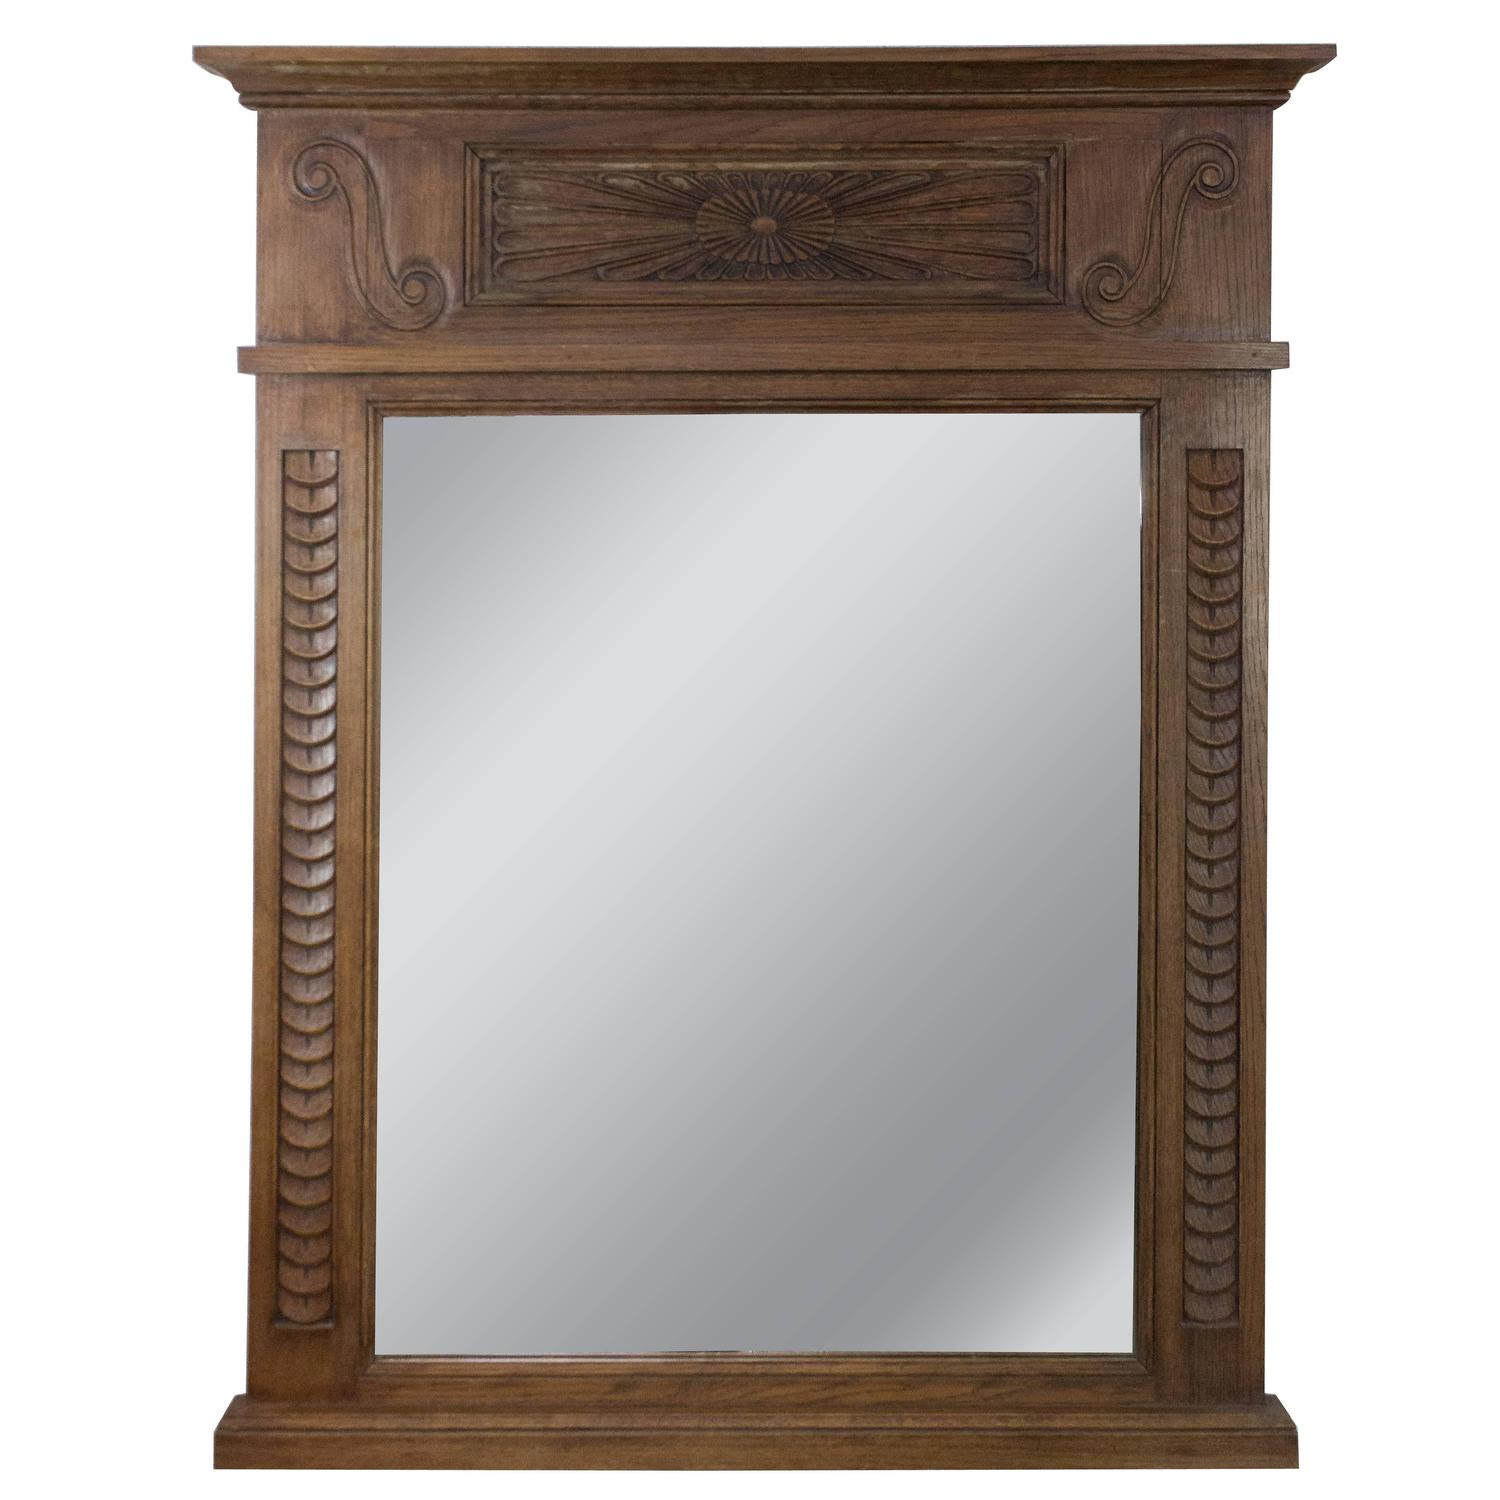 Late 19th century french mantel mirror with carved wooden for Mantel mirrors